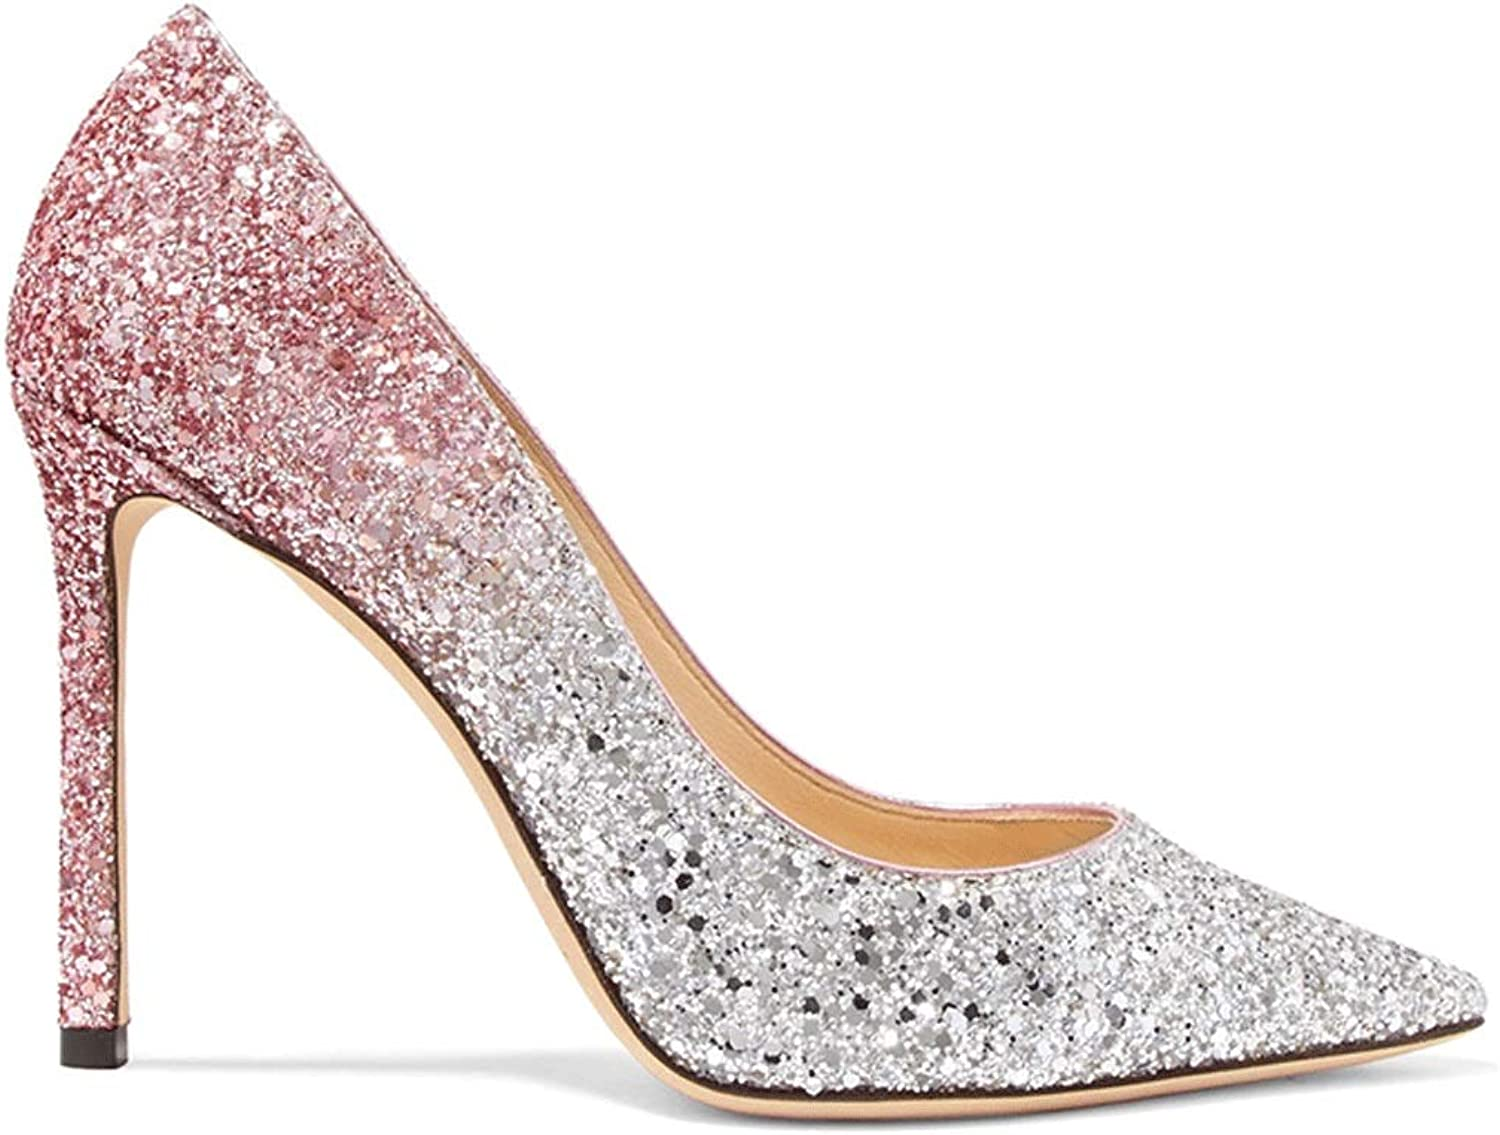 New Super High-Heeled Pointed Gradient Sequin Wedding shoes Pink Wedding Bridal shoes with Shallow Mouth Etiquette Single shoes Women Pumps